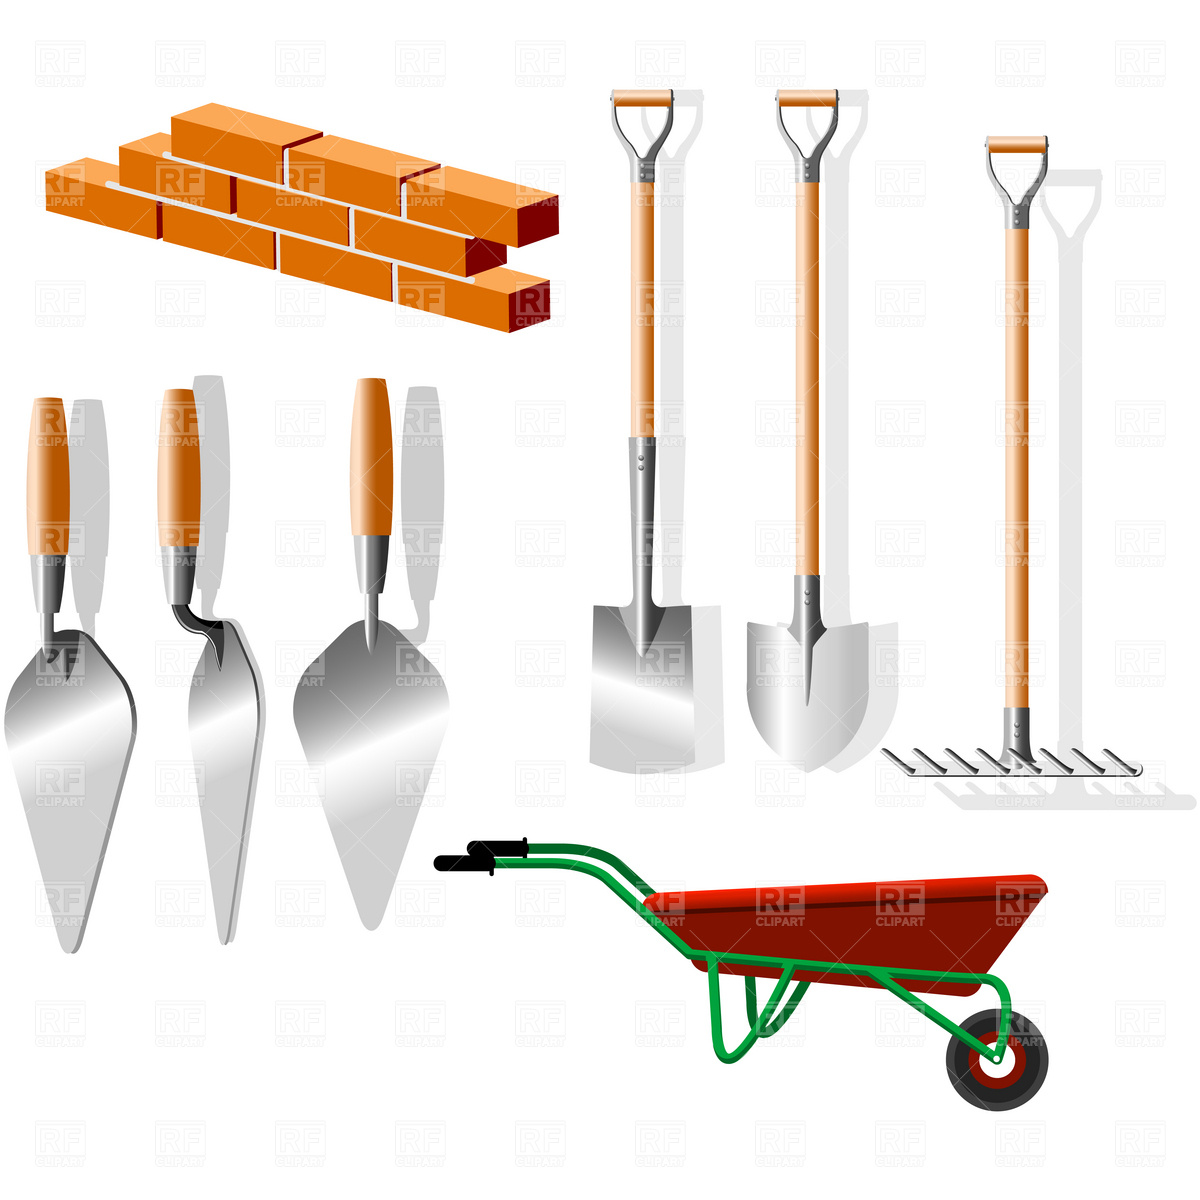 Building materials clipart png images for Materials needed to build a house